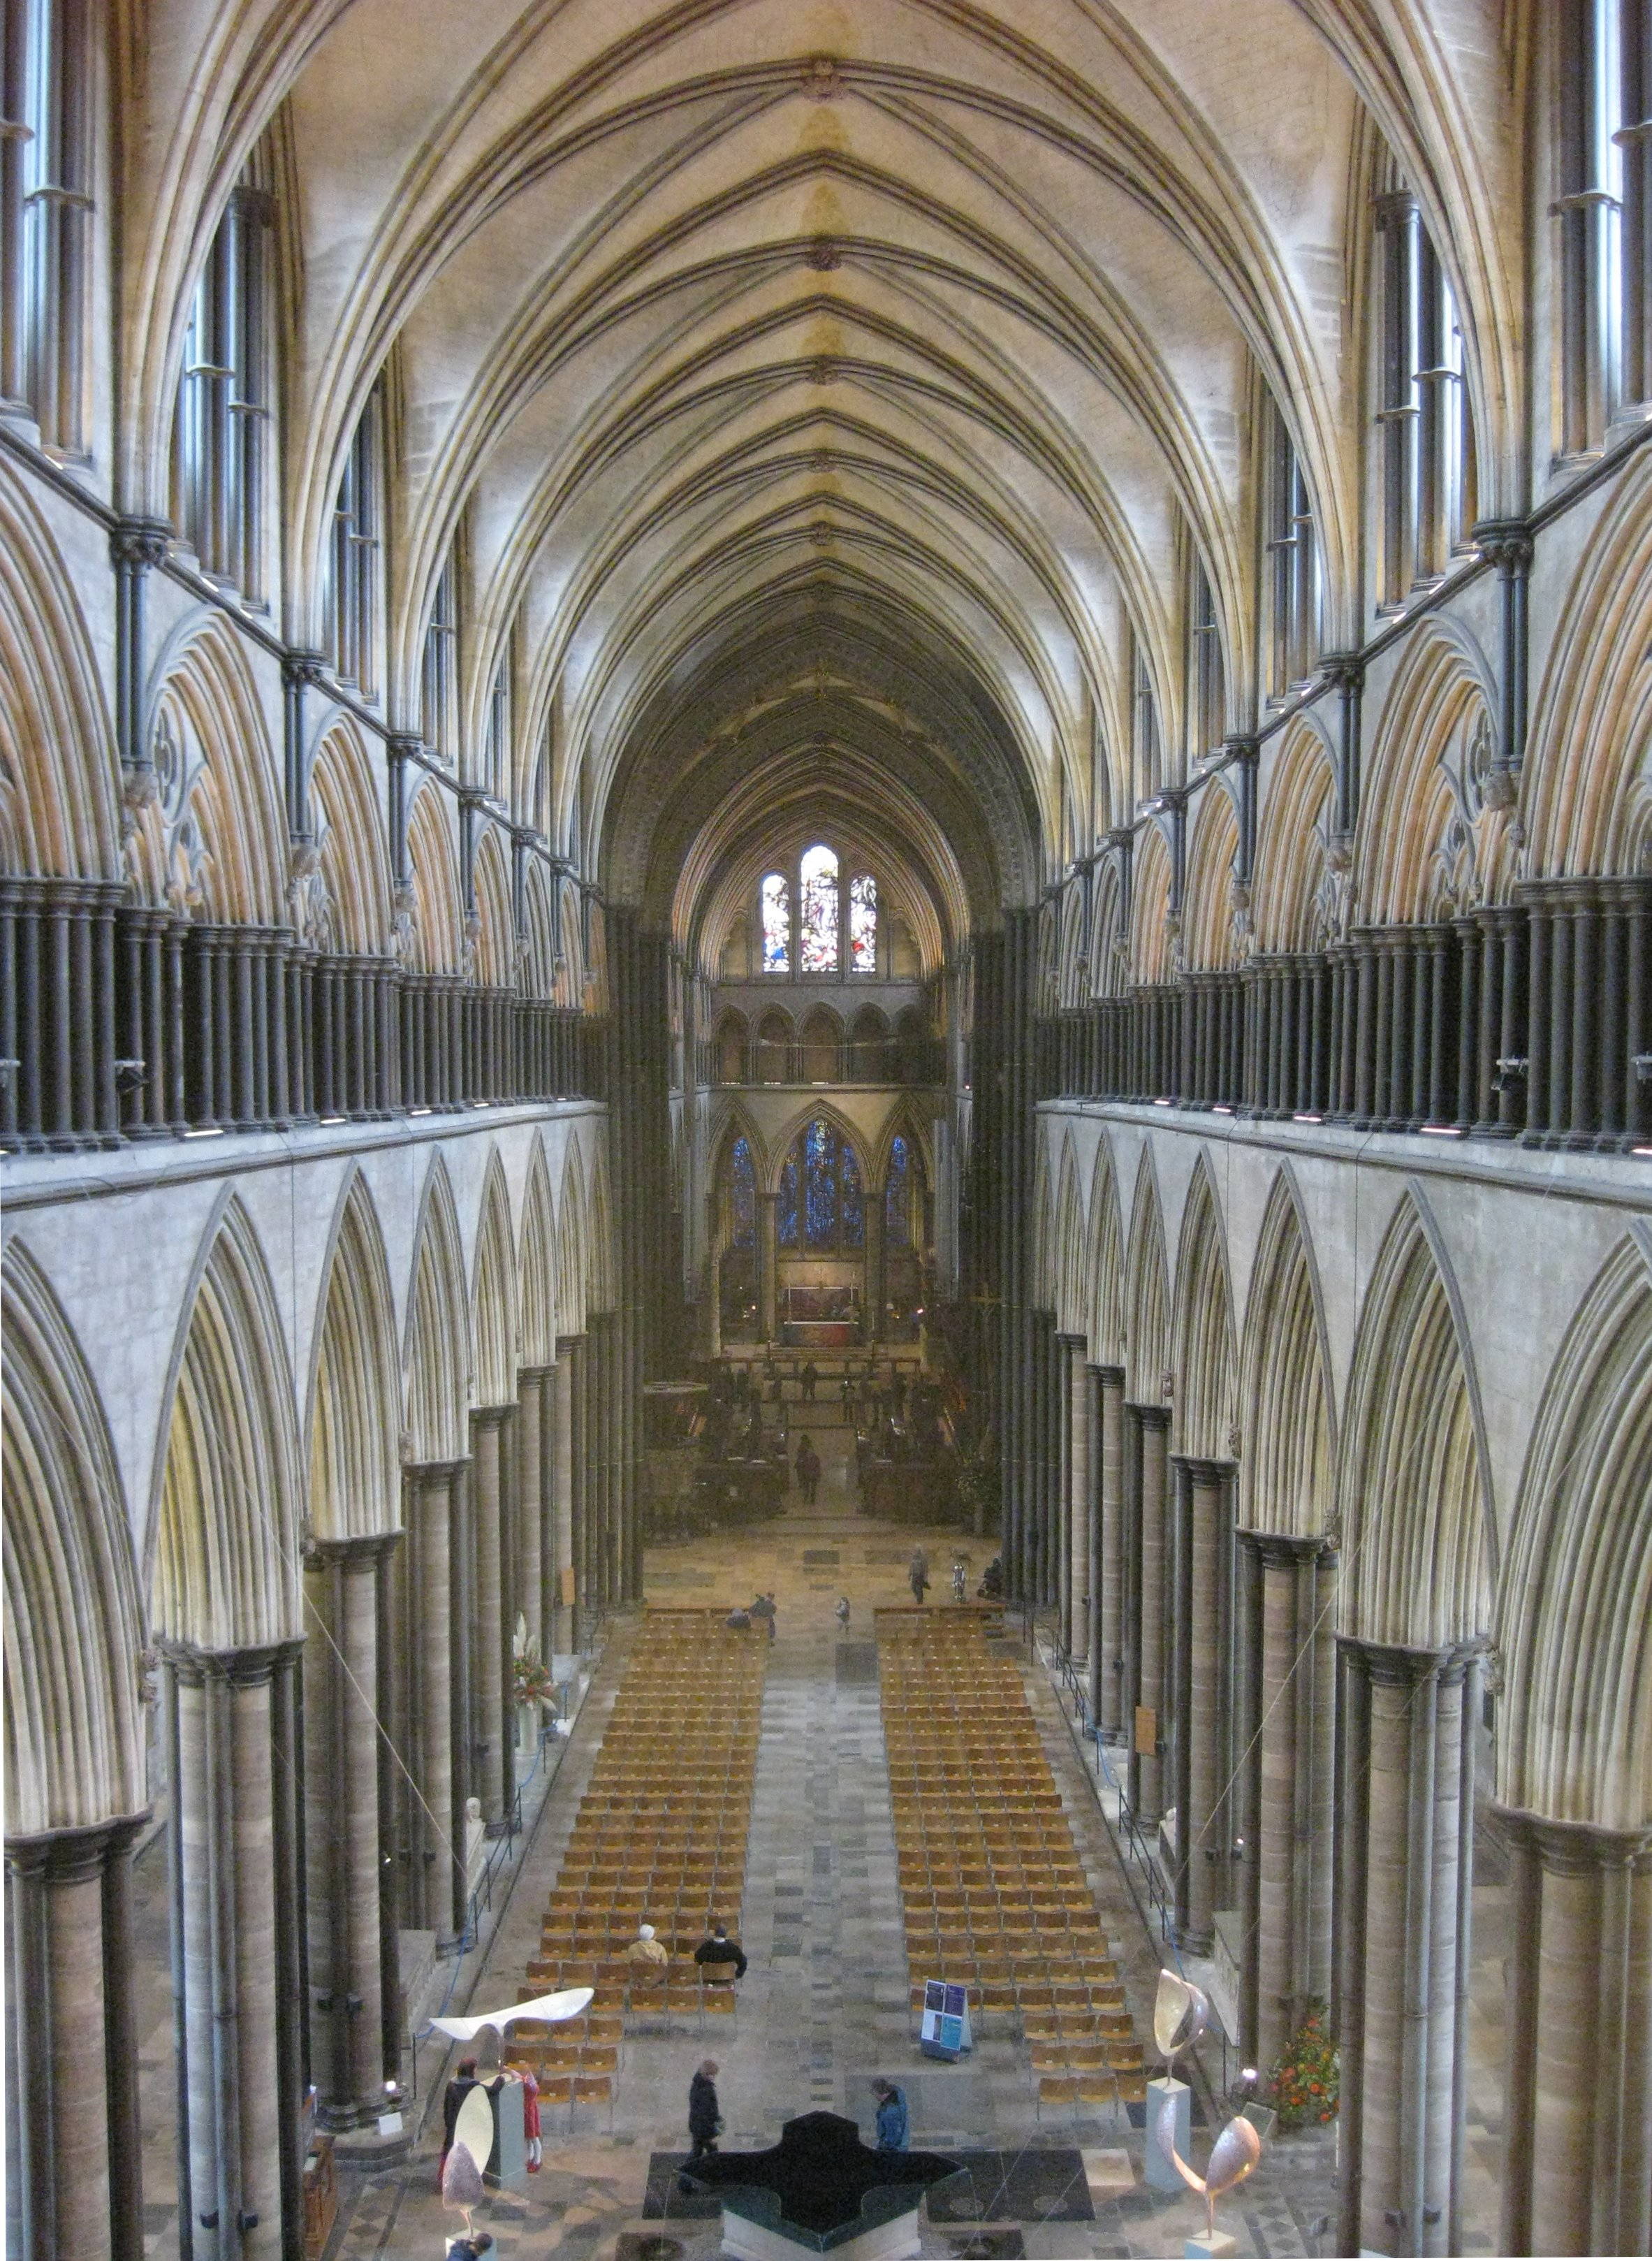 File:Salisbury Cathedral, Nave.jpg - Wikimedia Commons